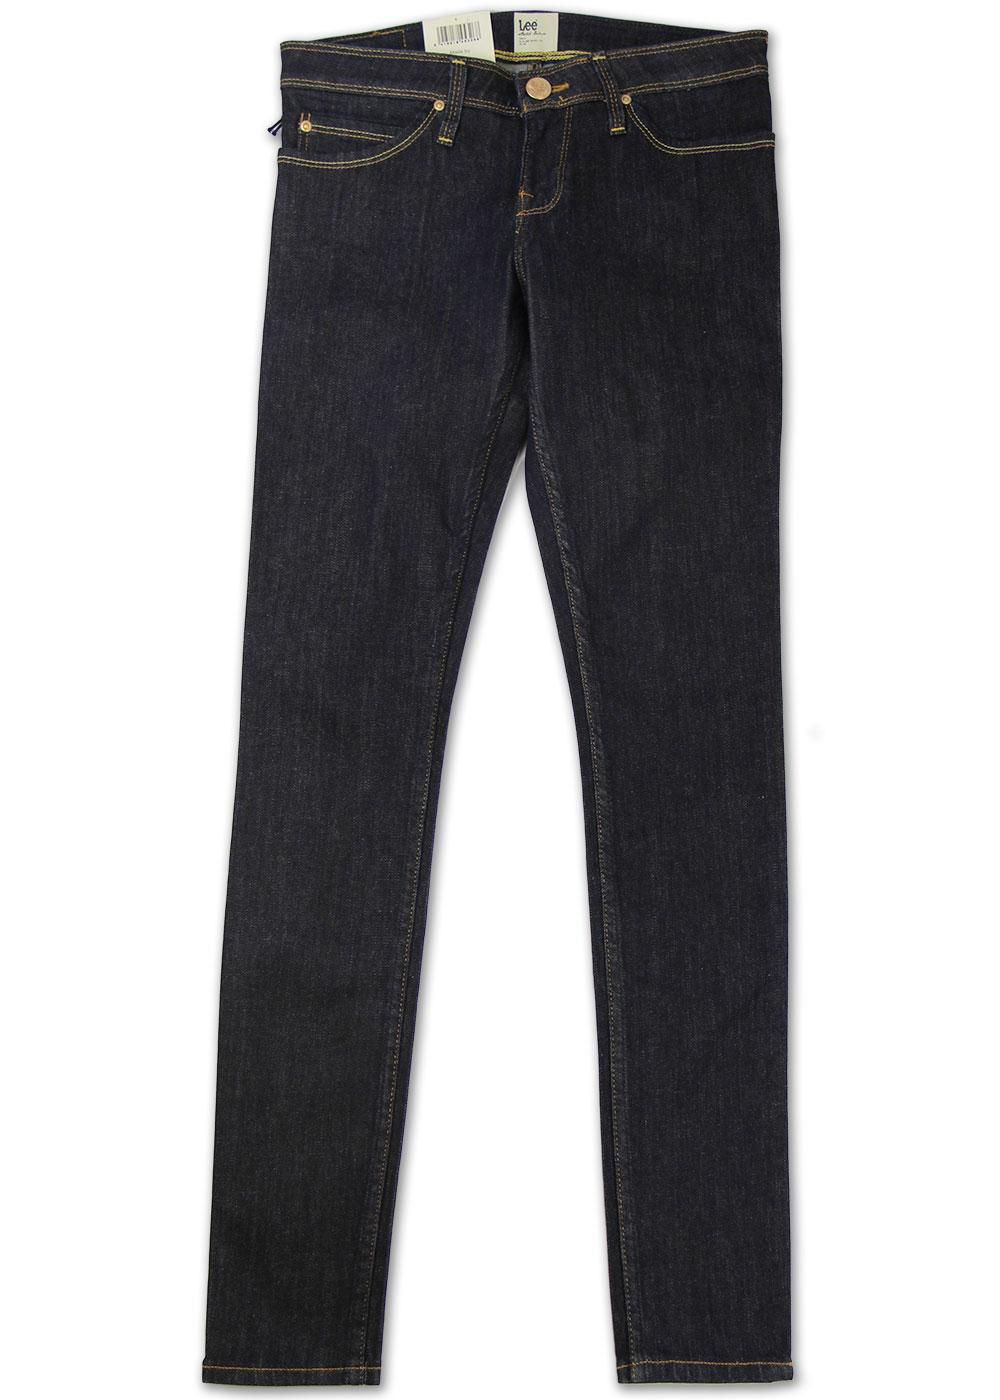 Toxey LEE Retro One Wash Super Skinny Denim Jeans